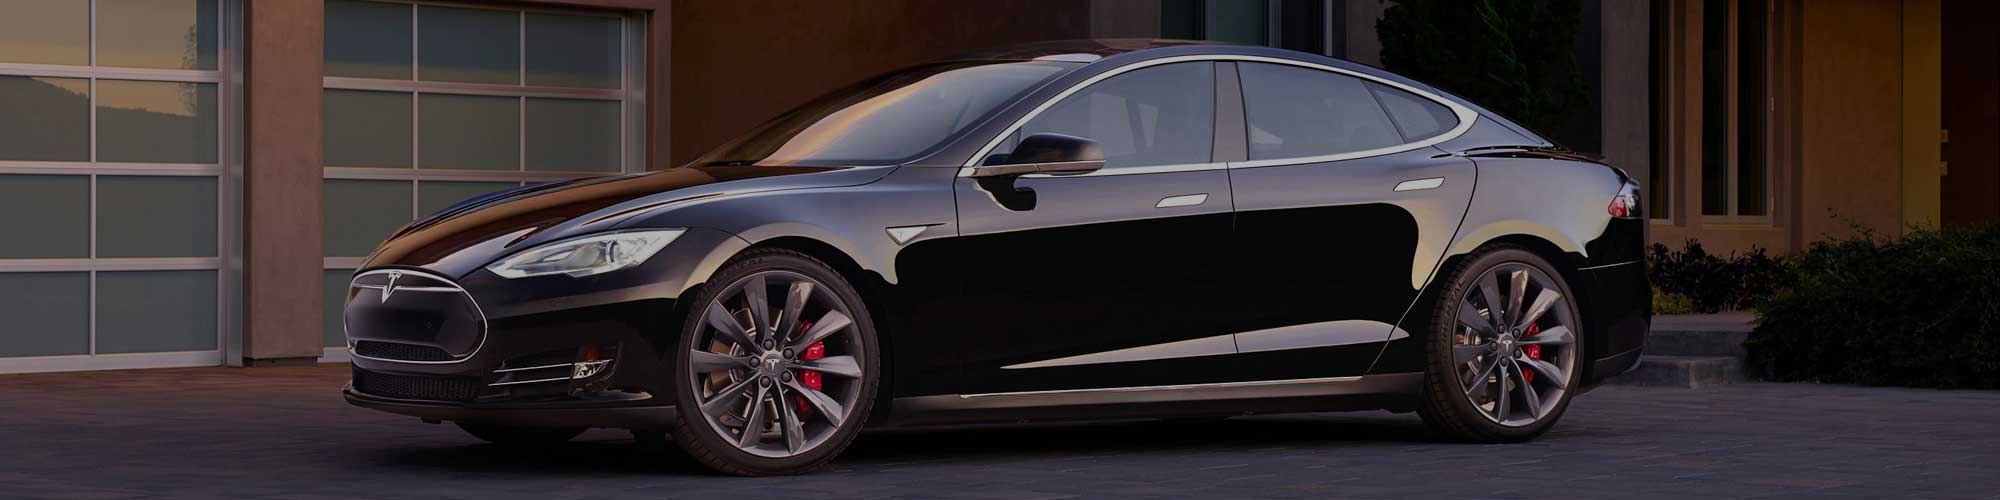 Tesla Launches new Model S